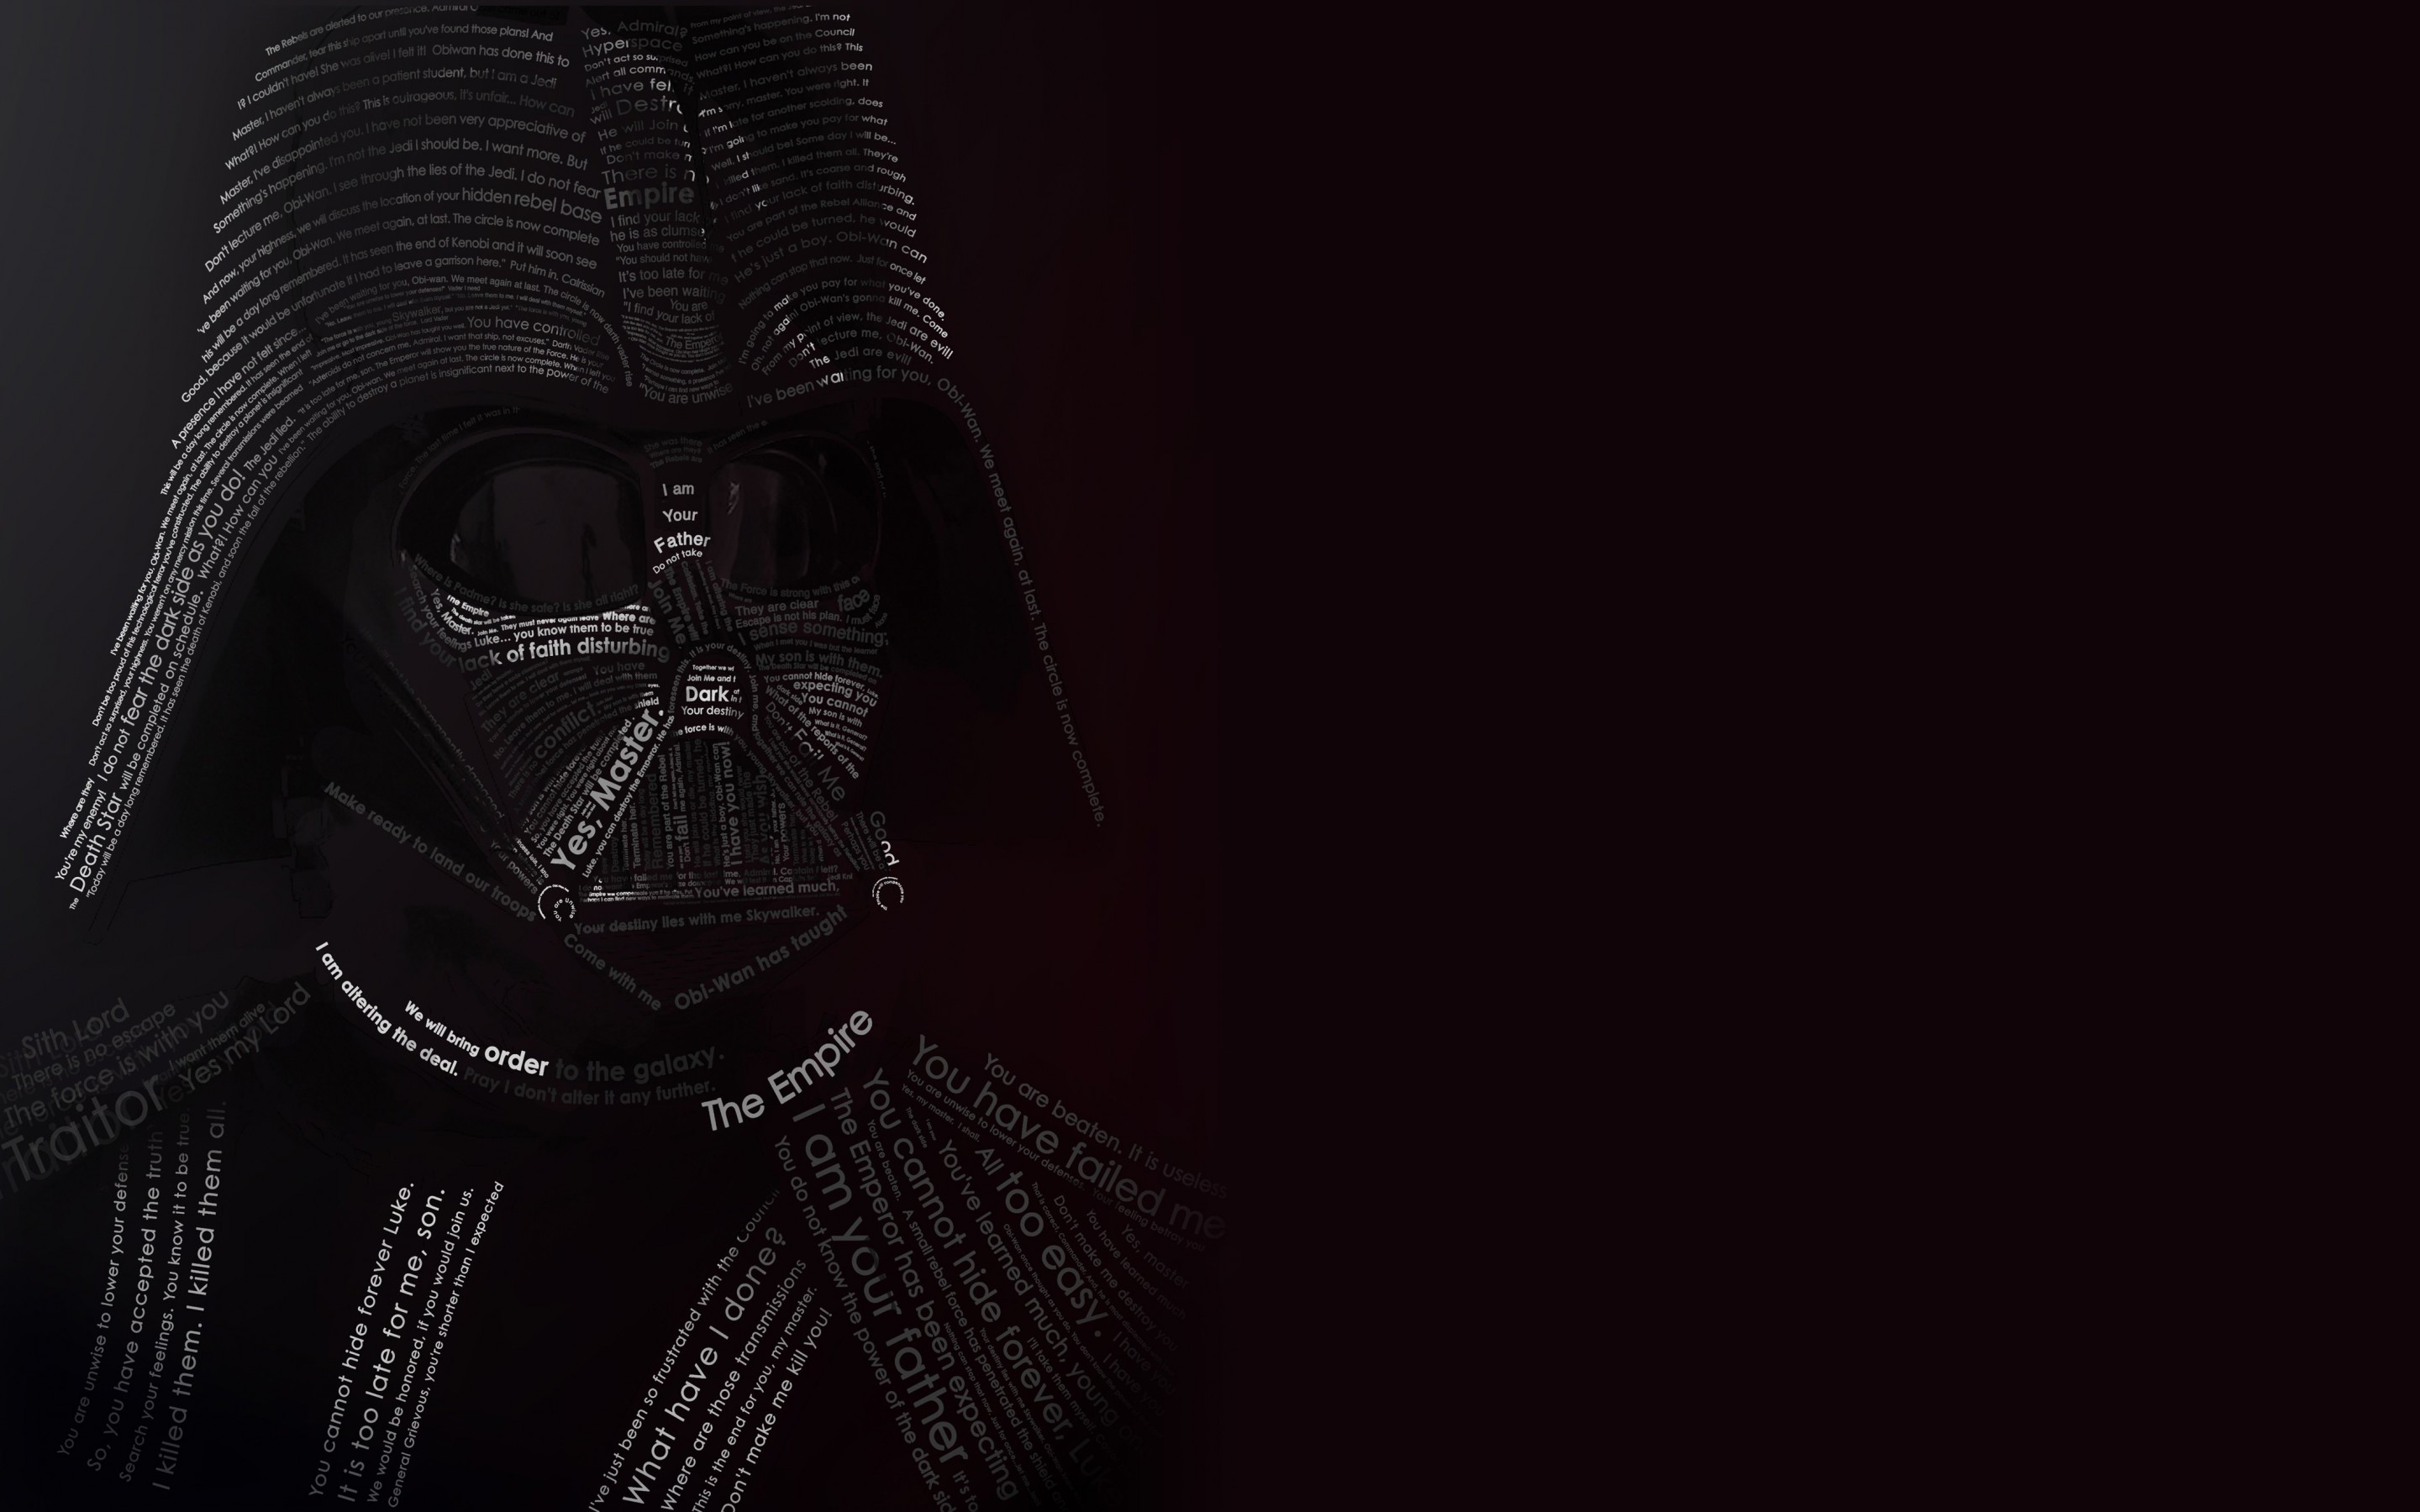 Darth Vader Typographic Portrait Wallpaper for Desktop 2880x1800